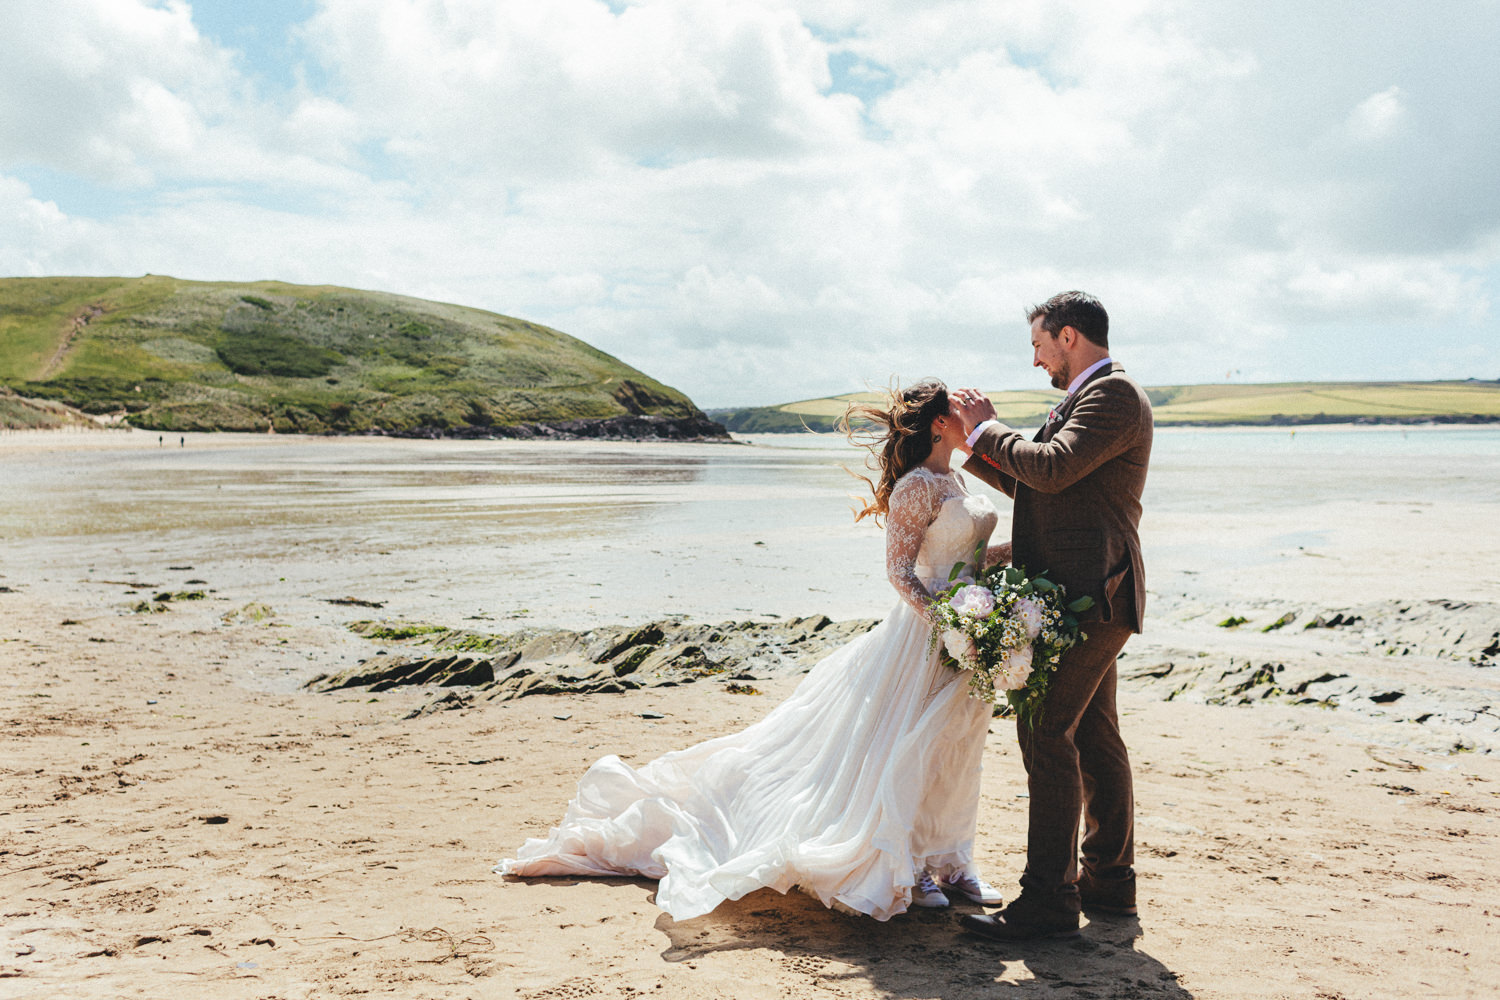 Daymer Bay, Bride and Groom at Daymer Bay, Beach wedding photography, Wedding portraits on the beach